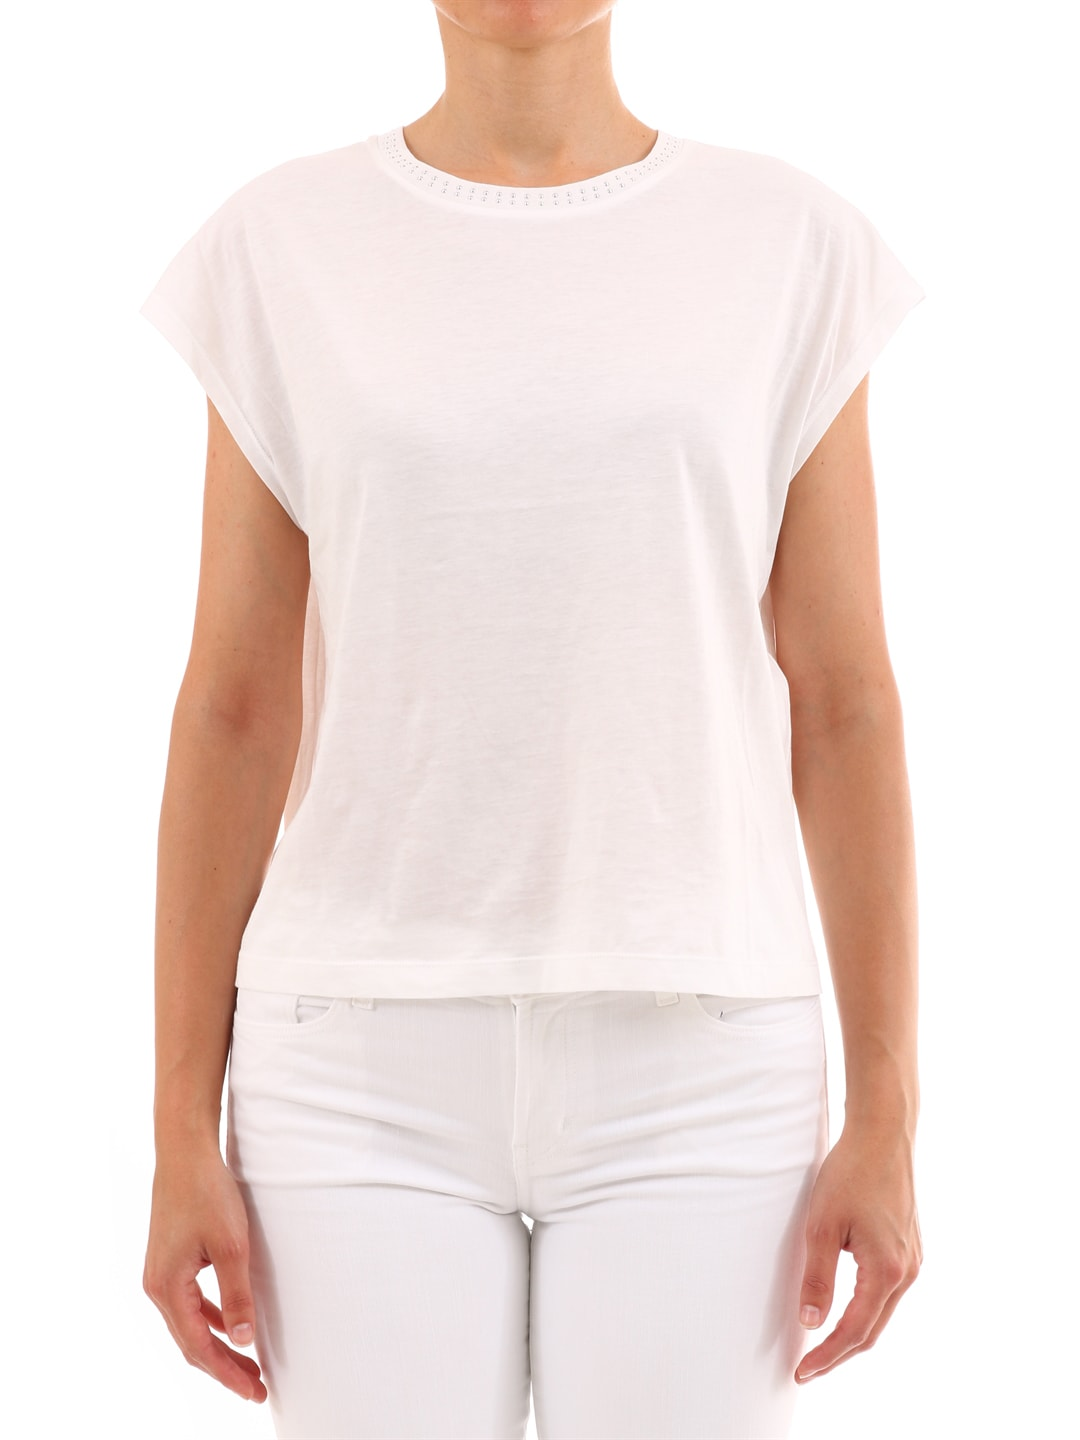 Celine T-shirt White Cotton